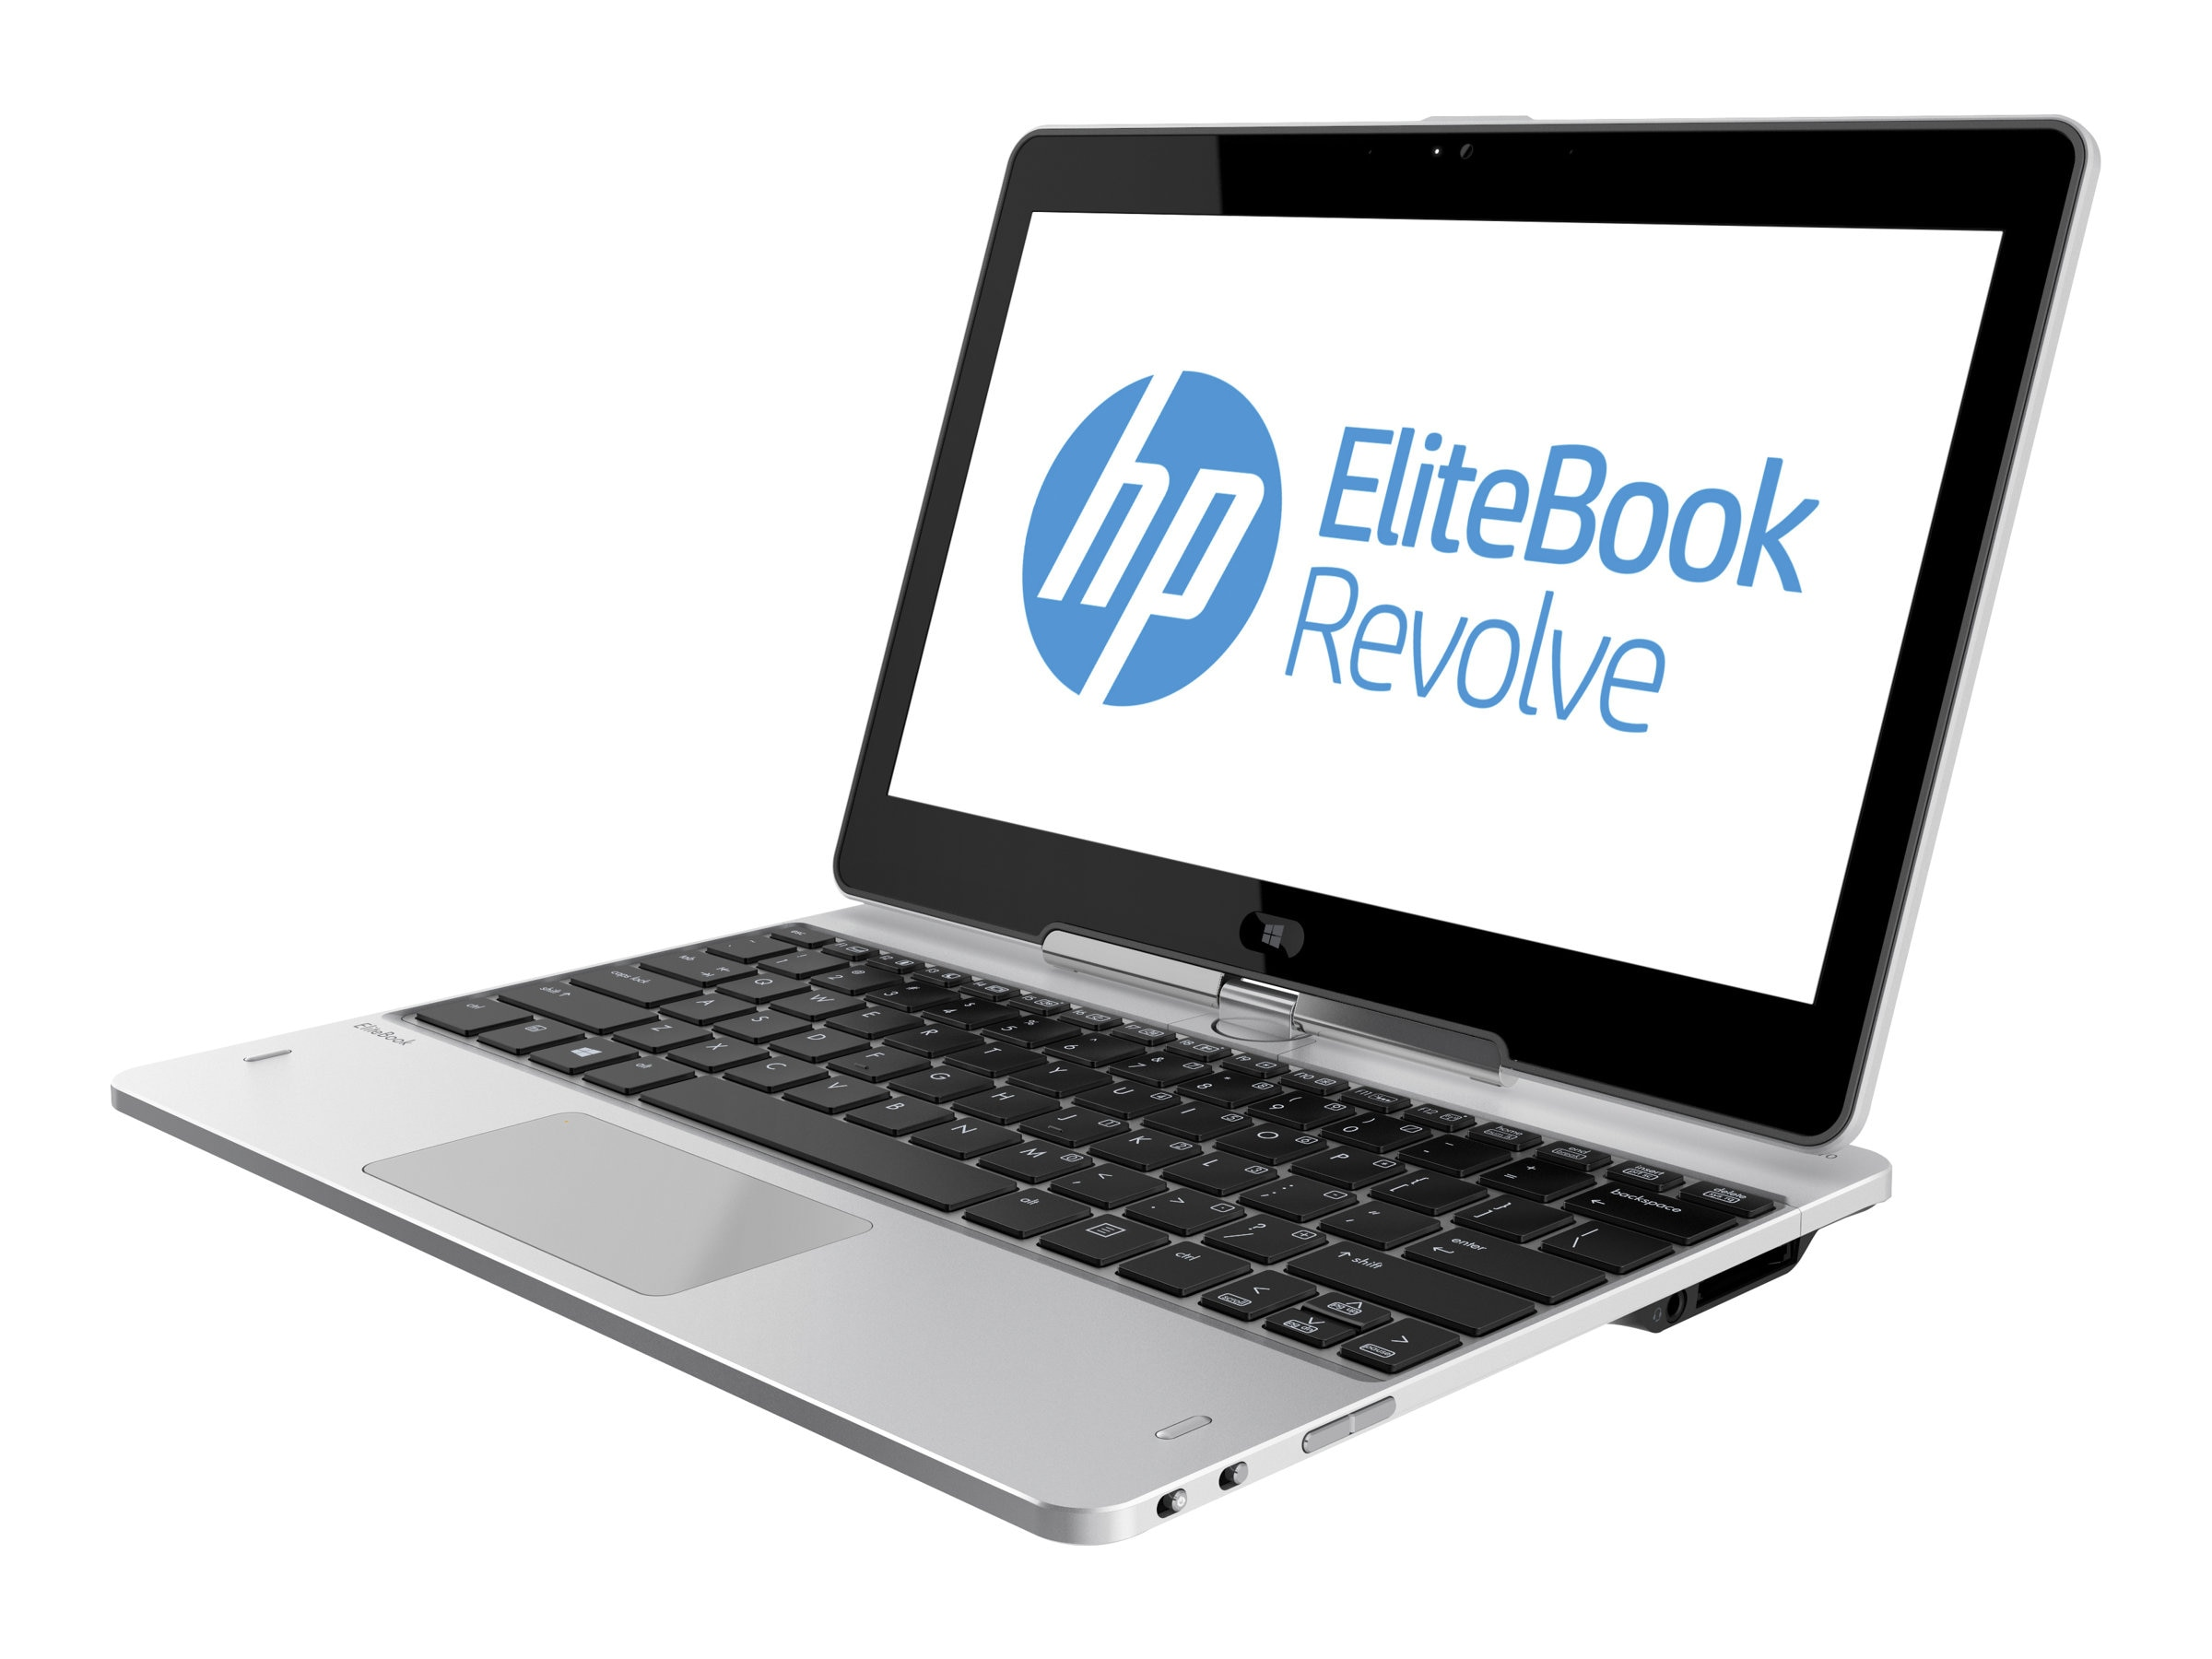 HP EliteBook Revolve 810 G2 Core i5-3437U 1.9GHz 2GB 180GB 11.6 W8P64, E8M05UP#ABA, 17865369, Notebooks - Convertible